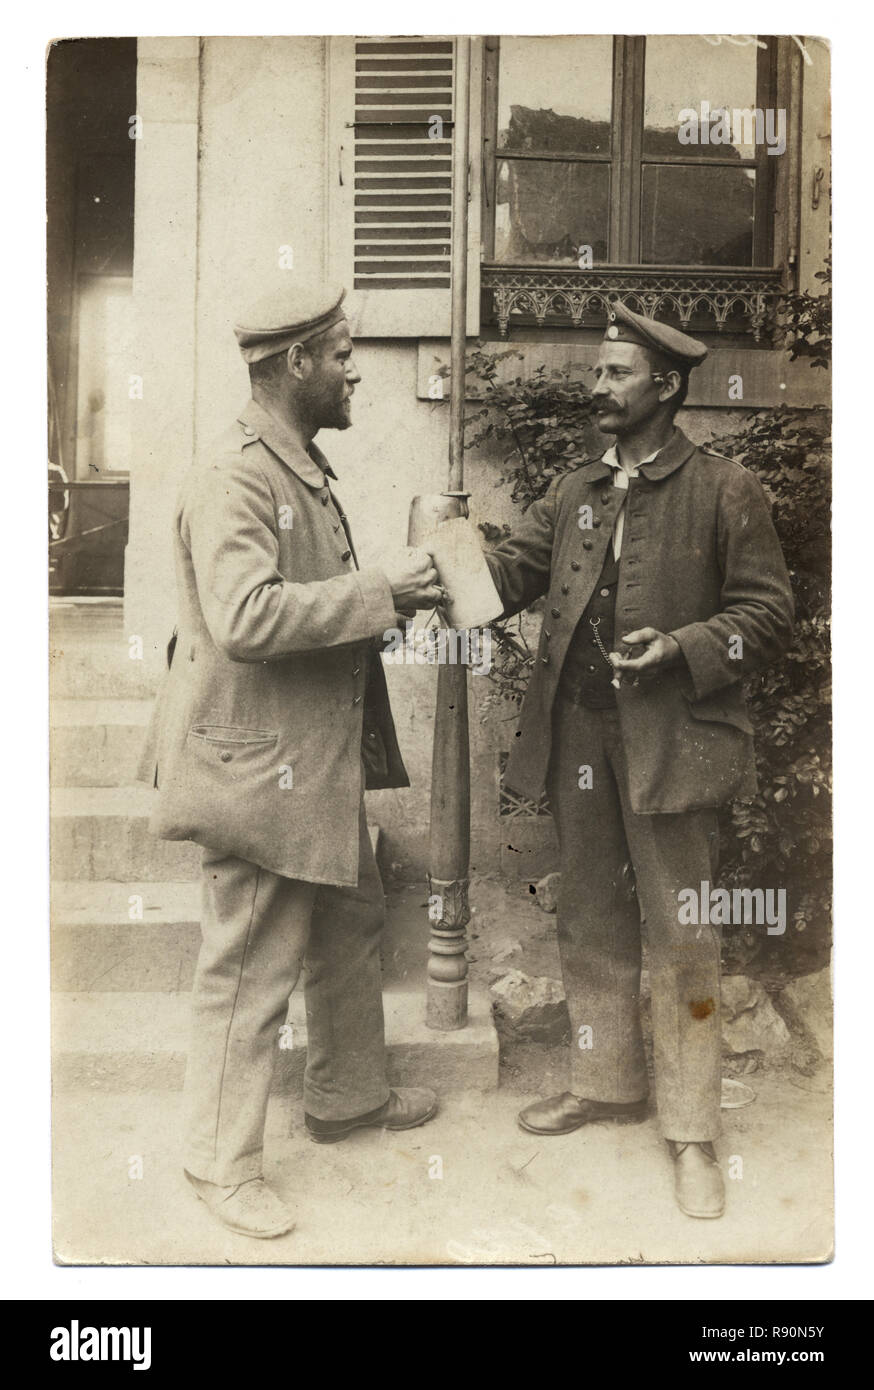 Vintage photograph of German first world war soldiers drinking beer from Tankards, circa 1916.  mar Diloisy St Krauz (Lebertal) - Stock Image